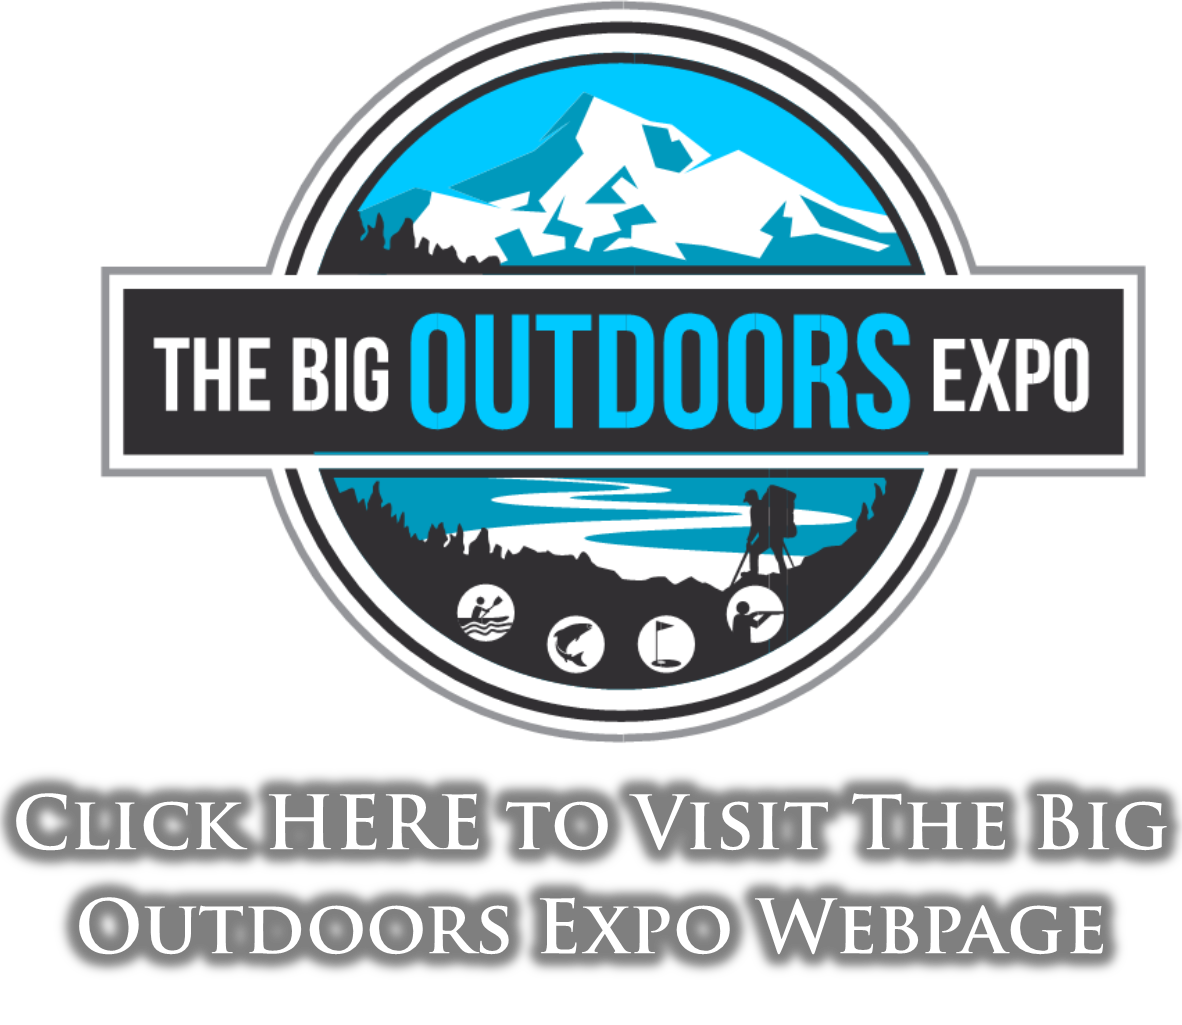 The Big Outdoors Expo